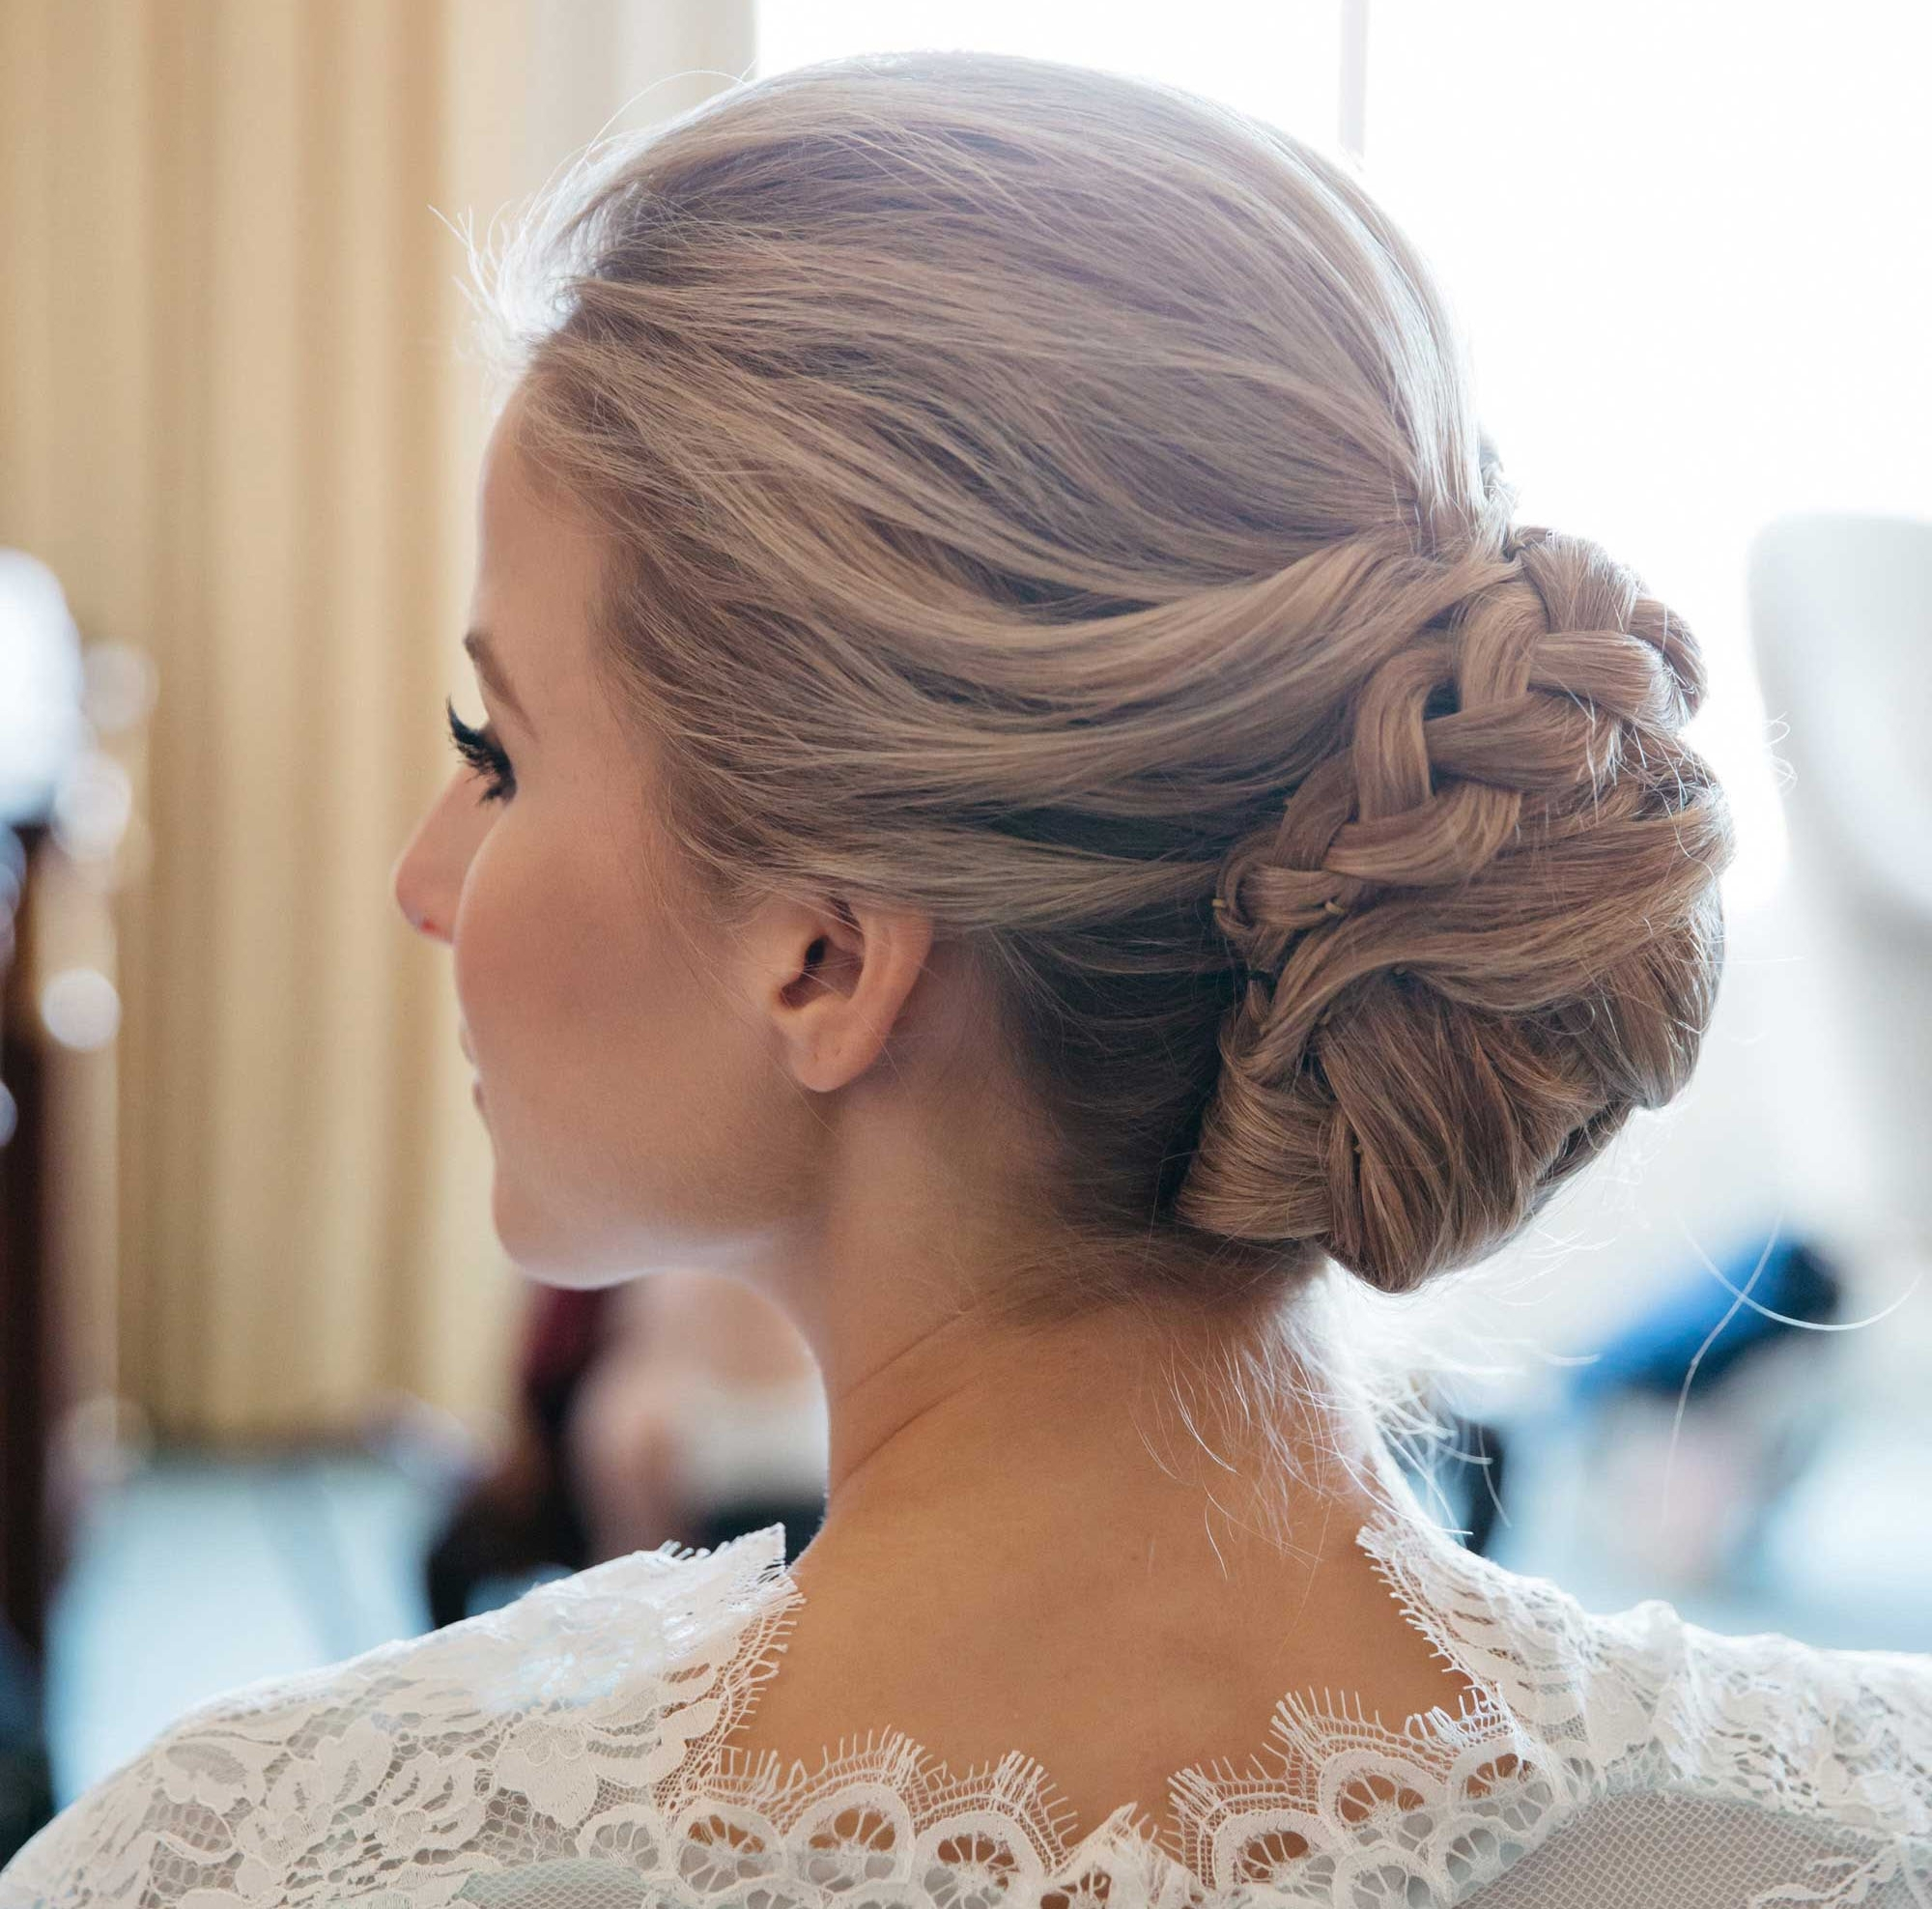 Braided Hairstyles: 5 Ideas For Your Wedding Look – Inside Weddings Within Recent Wedding Updos For Long Hair With Braids (View 5 of 15)